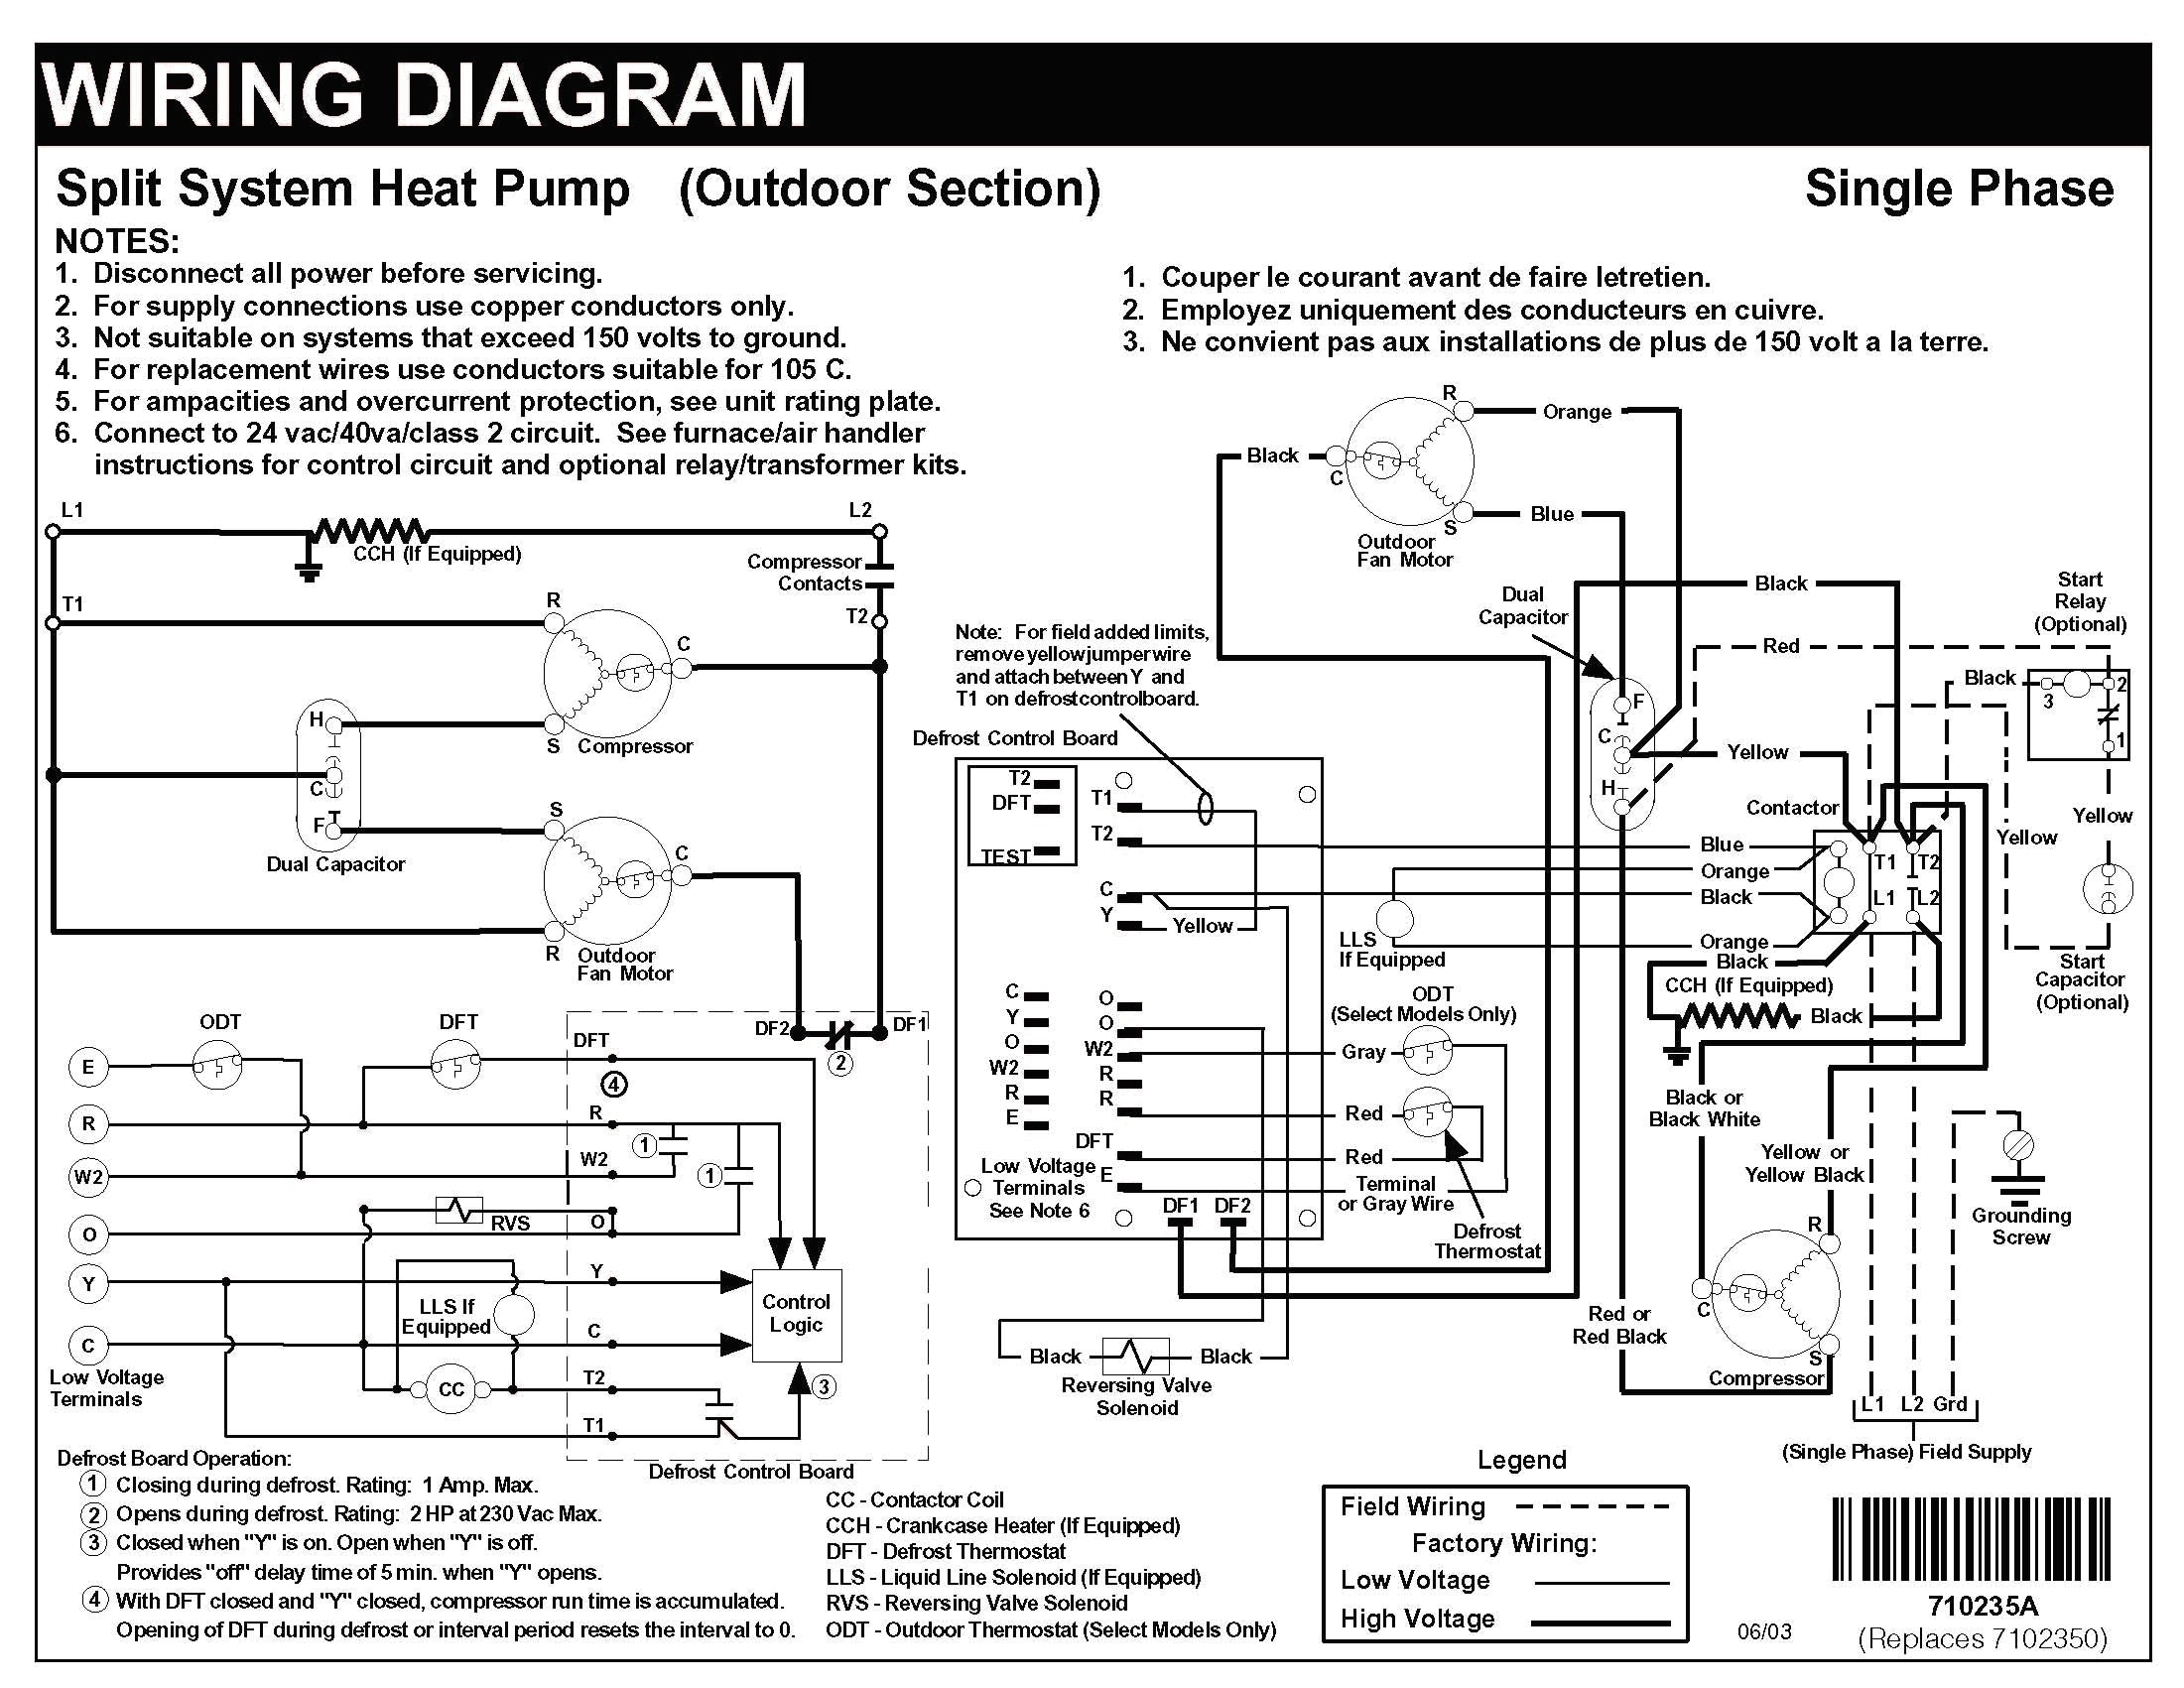 nest thermostat heat pump wiring diagram Collection-Wiring Diagram Hvac thermostat Fresh Nest thermostat Wiring Diagram Heat Pump Elegant Famous Carrier Heat 14-k